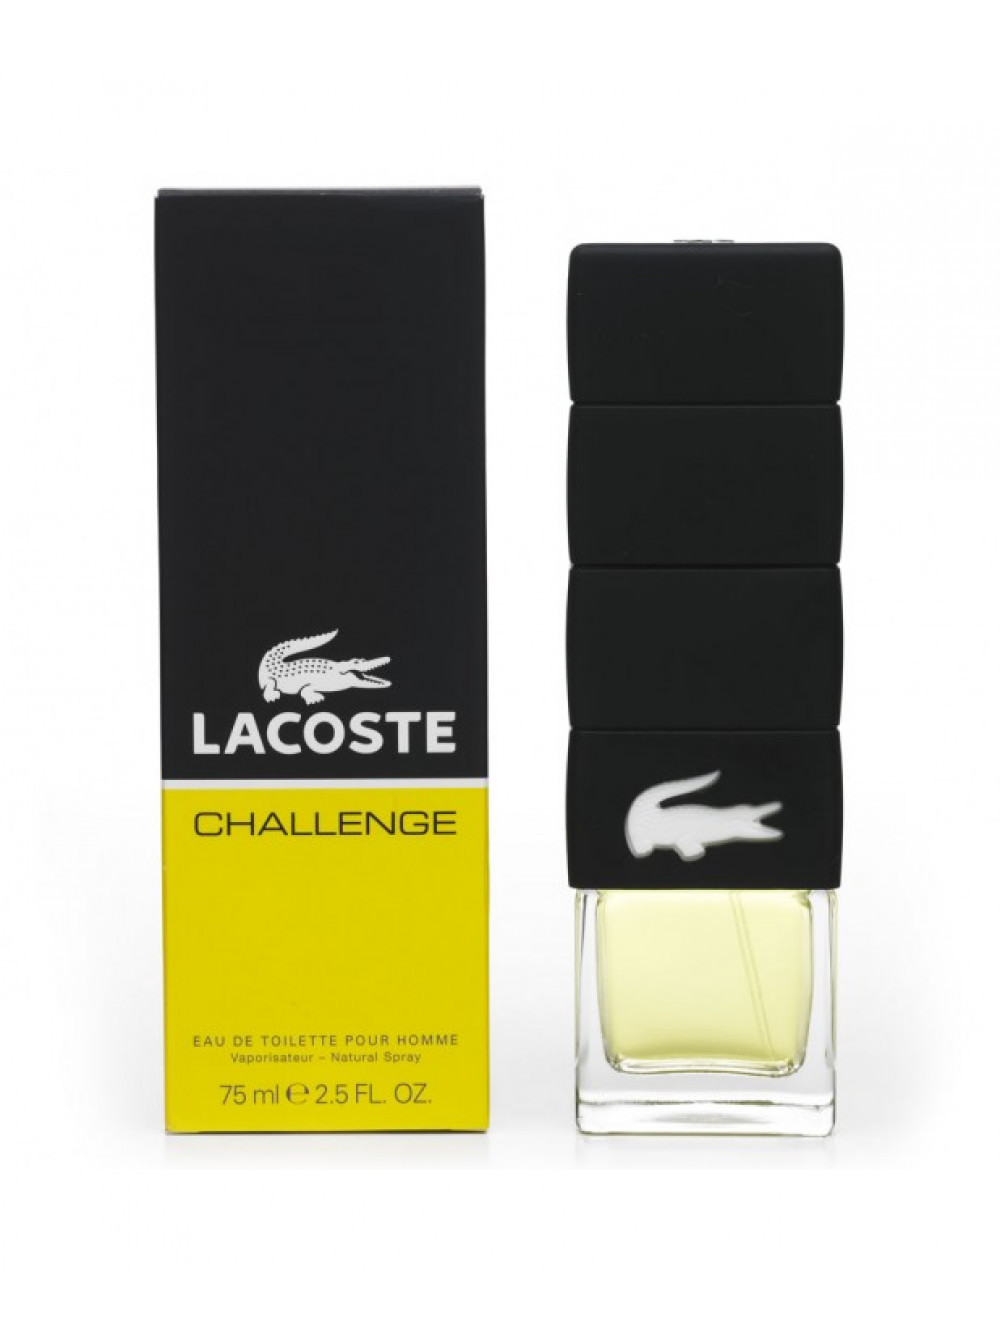 Lacoste French pronunciation is a French company founded in 1933 by tennis player René Lacoste and André Gillier It sells clothing footwear sportswear